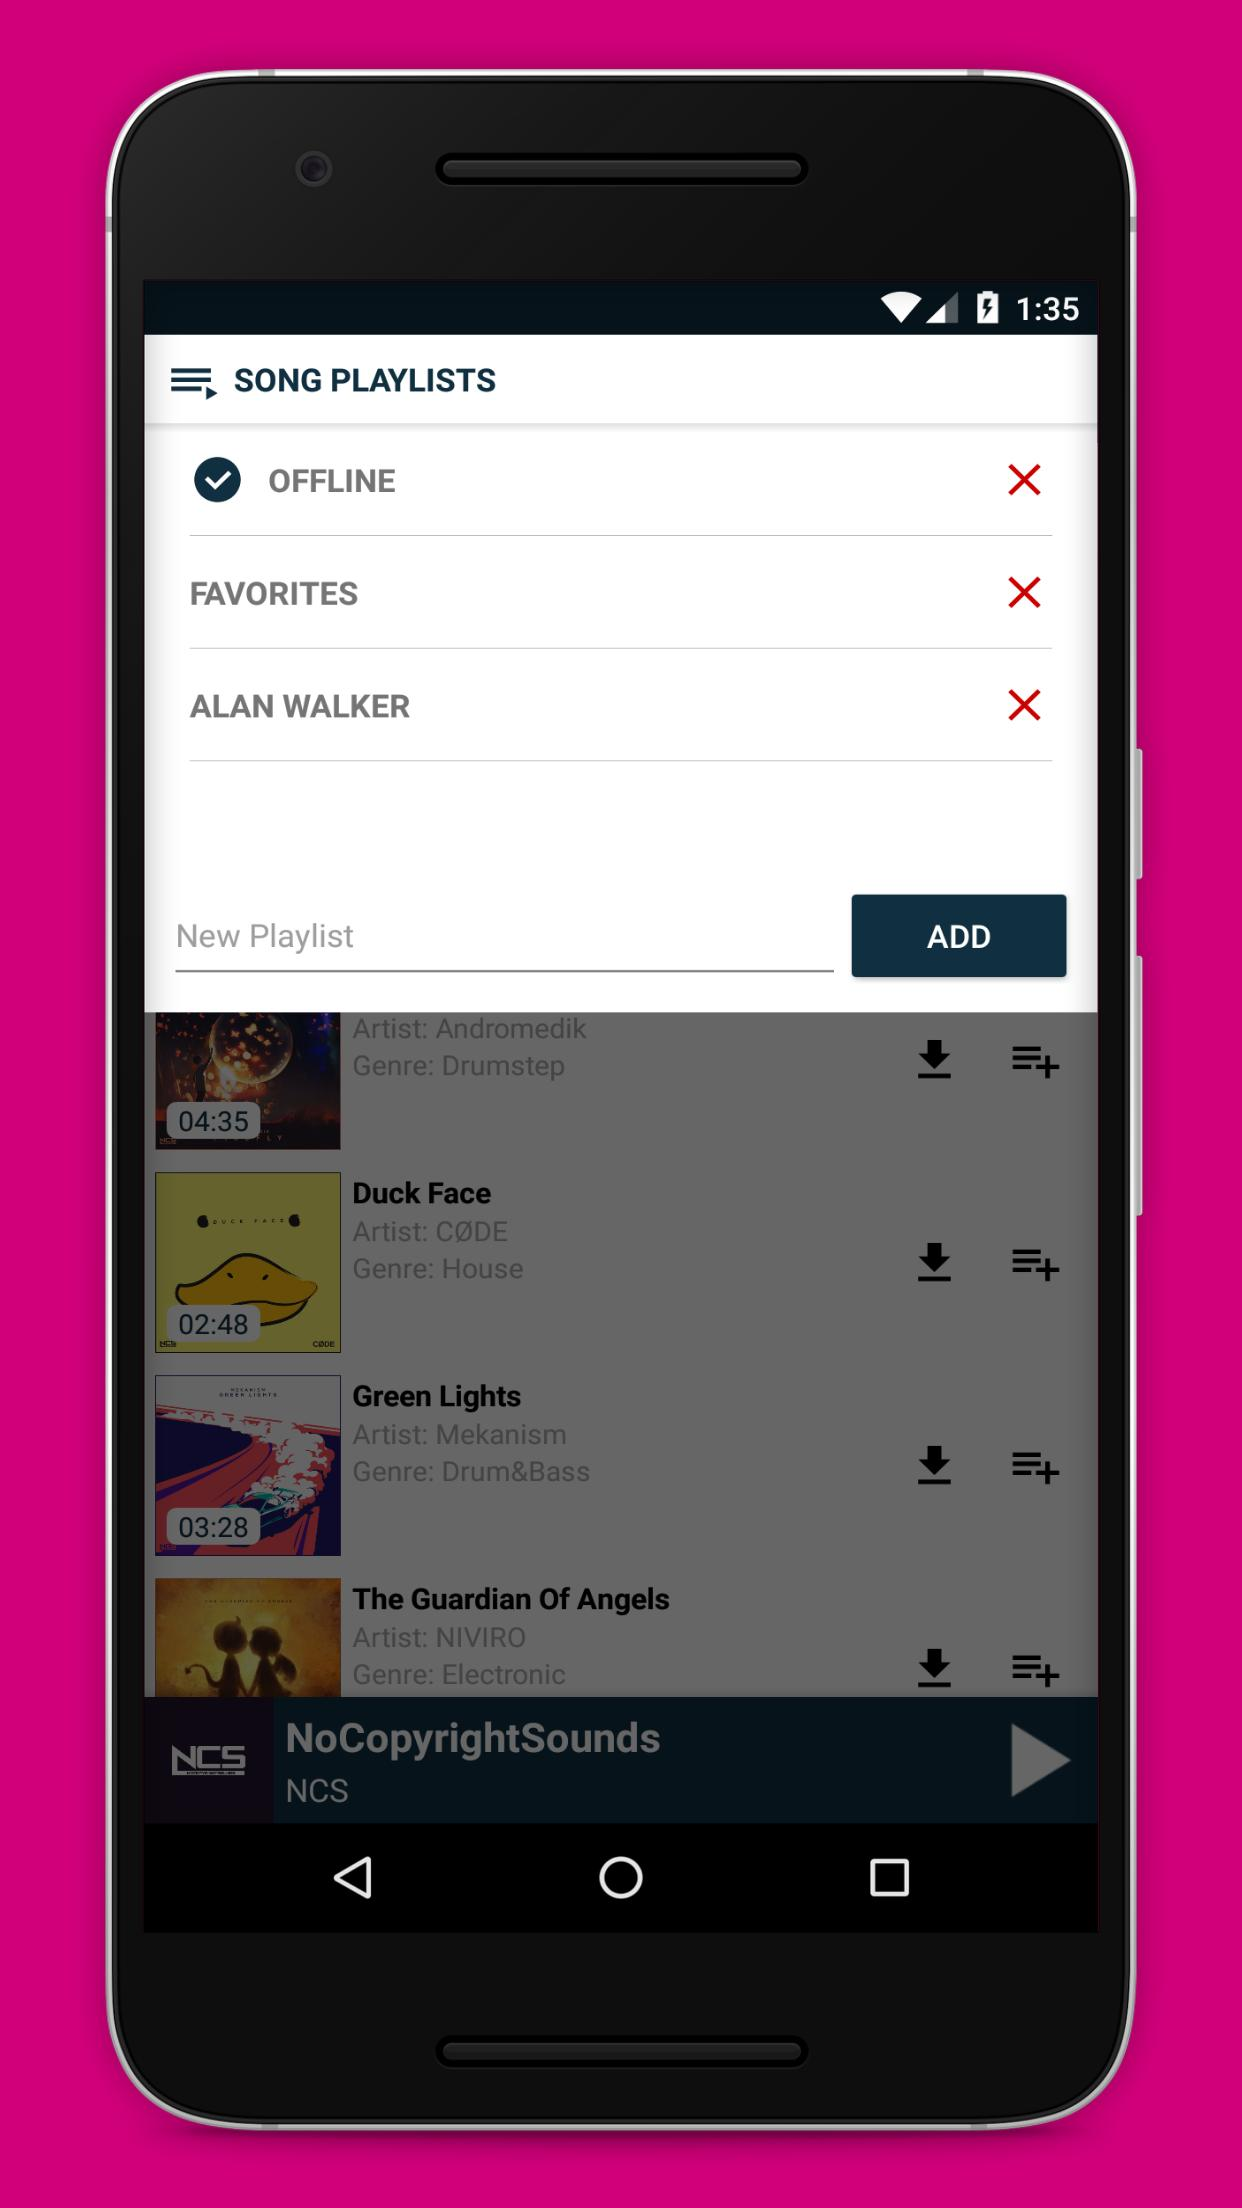 Music player for NCS (NoCopyrightSounds) for Android - APK Download